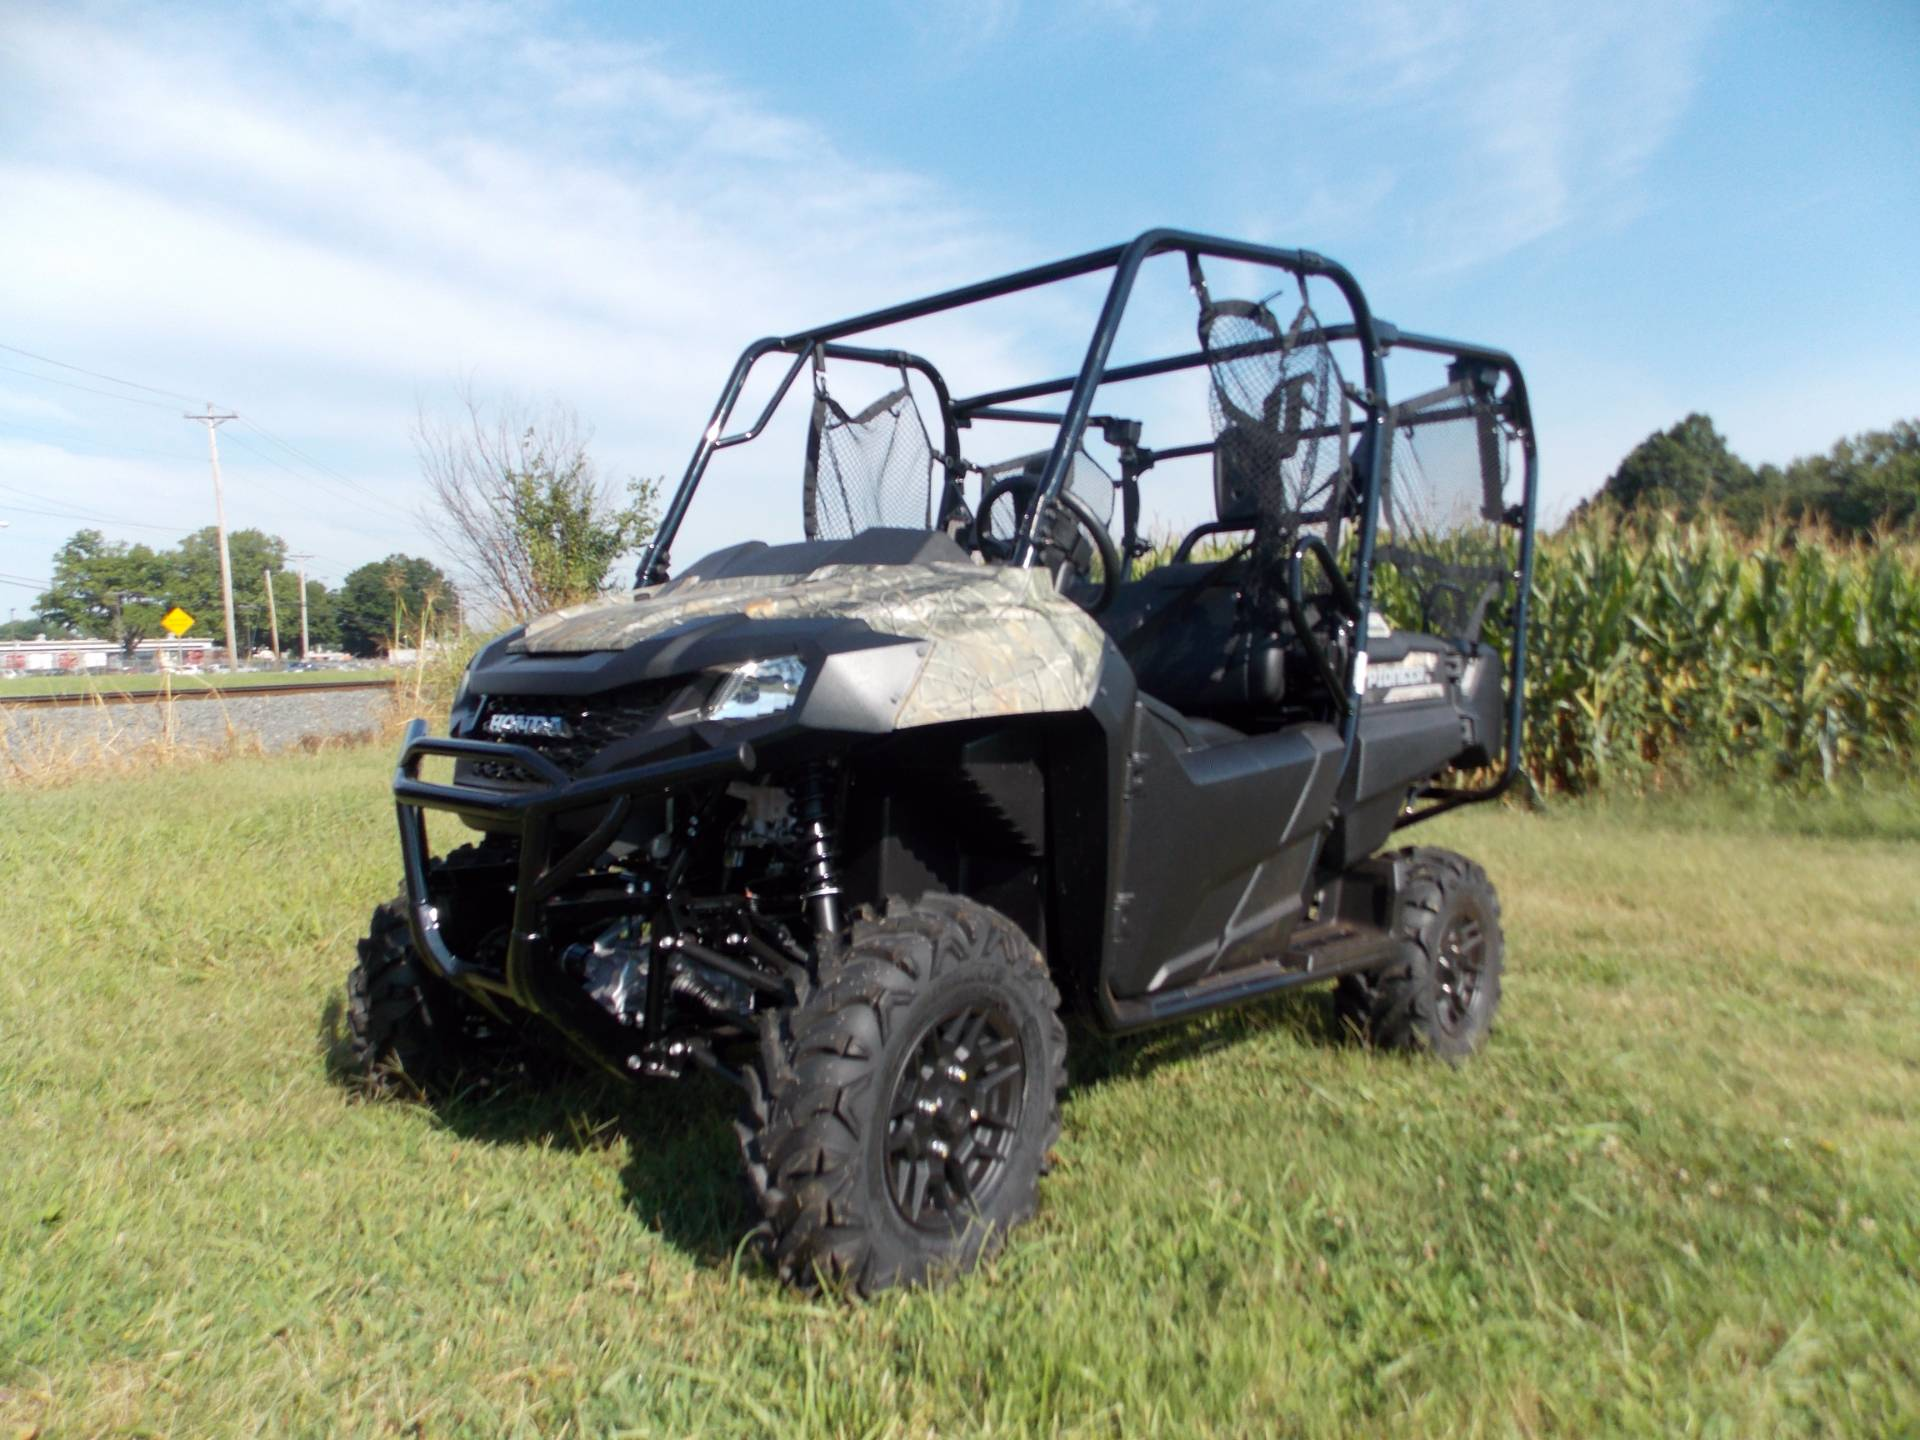 pioneer sxs review an news changes utility deluxe occurred new error vehicle of atv announcement honda just specs model utv side by